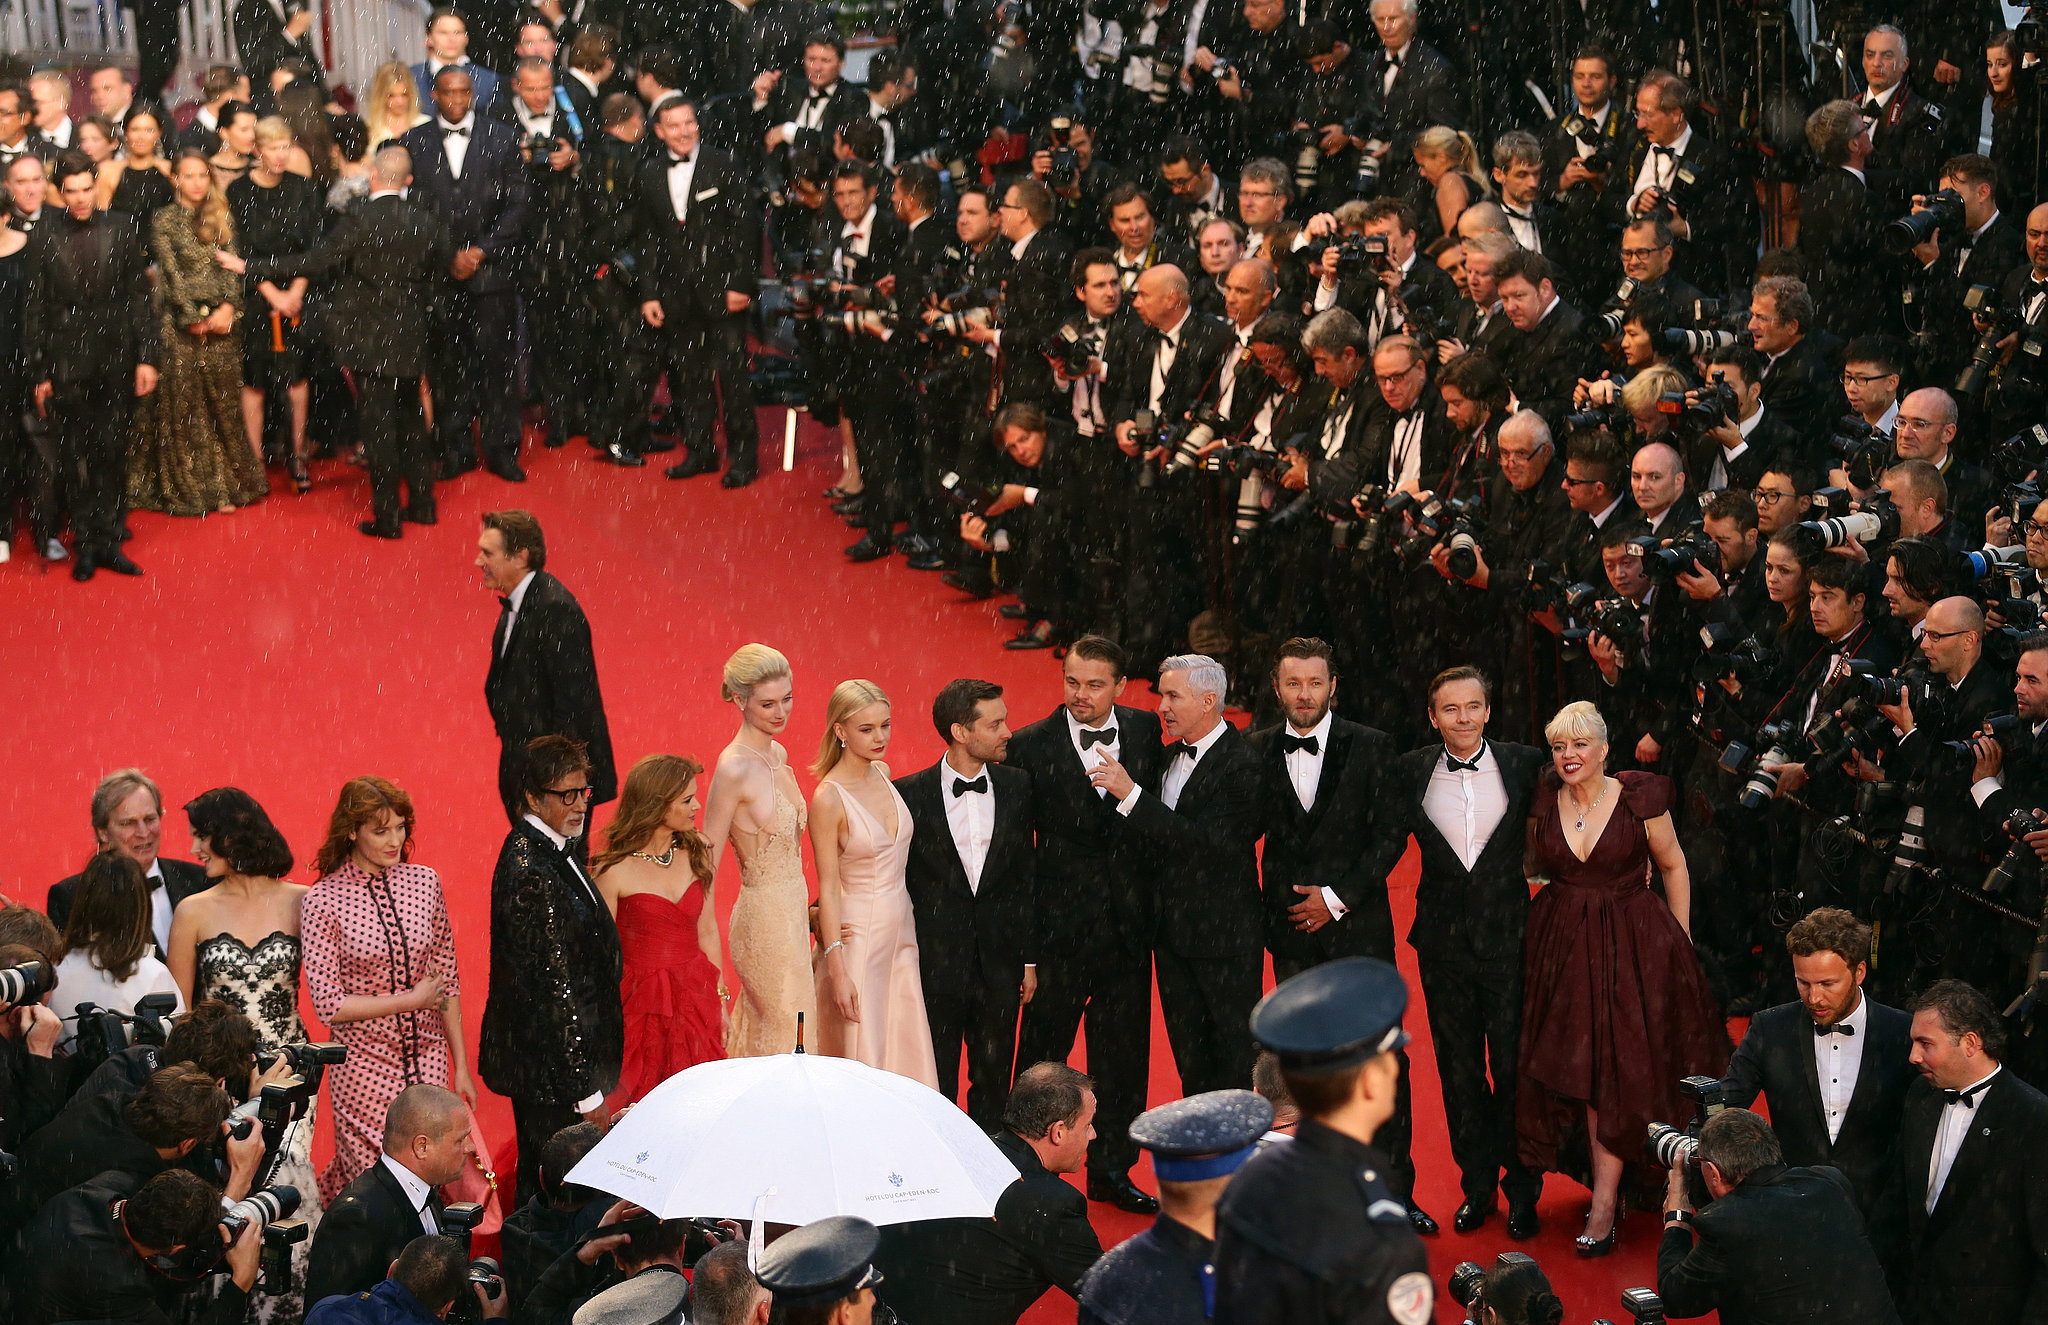 The Red Carpet at Cannes